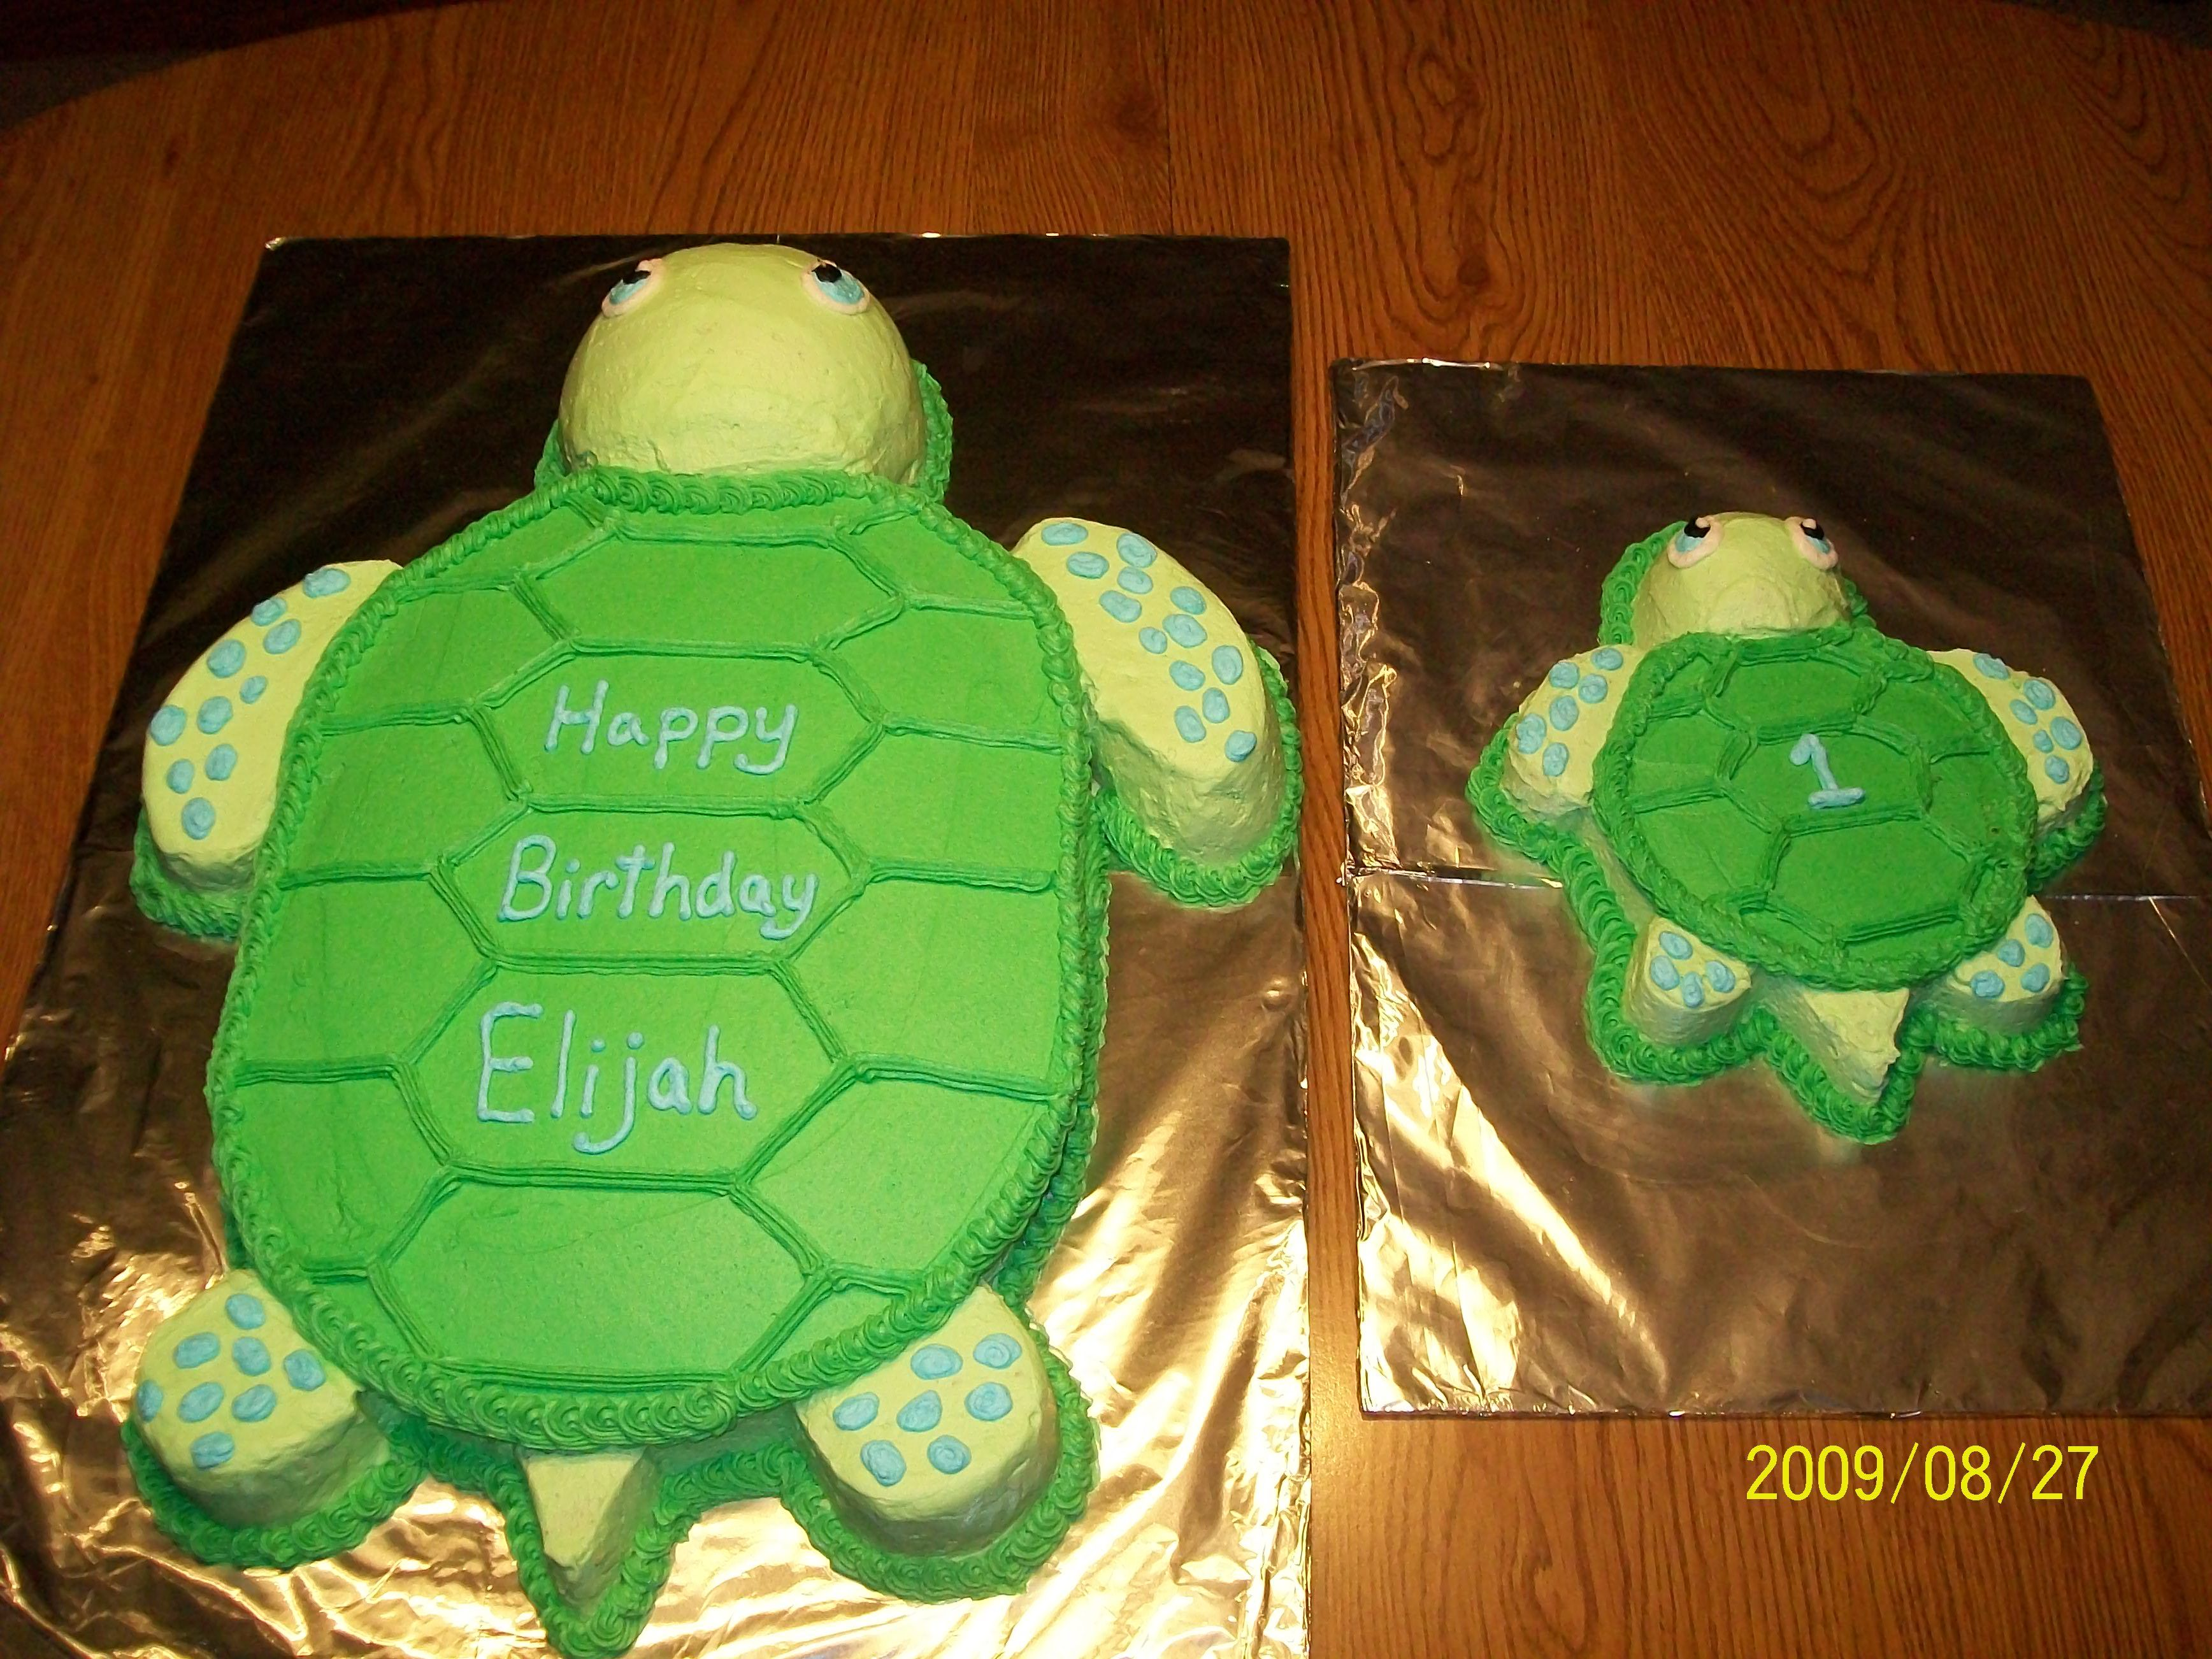 How to Make a Turtle Shaped Cake